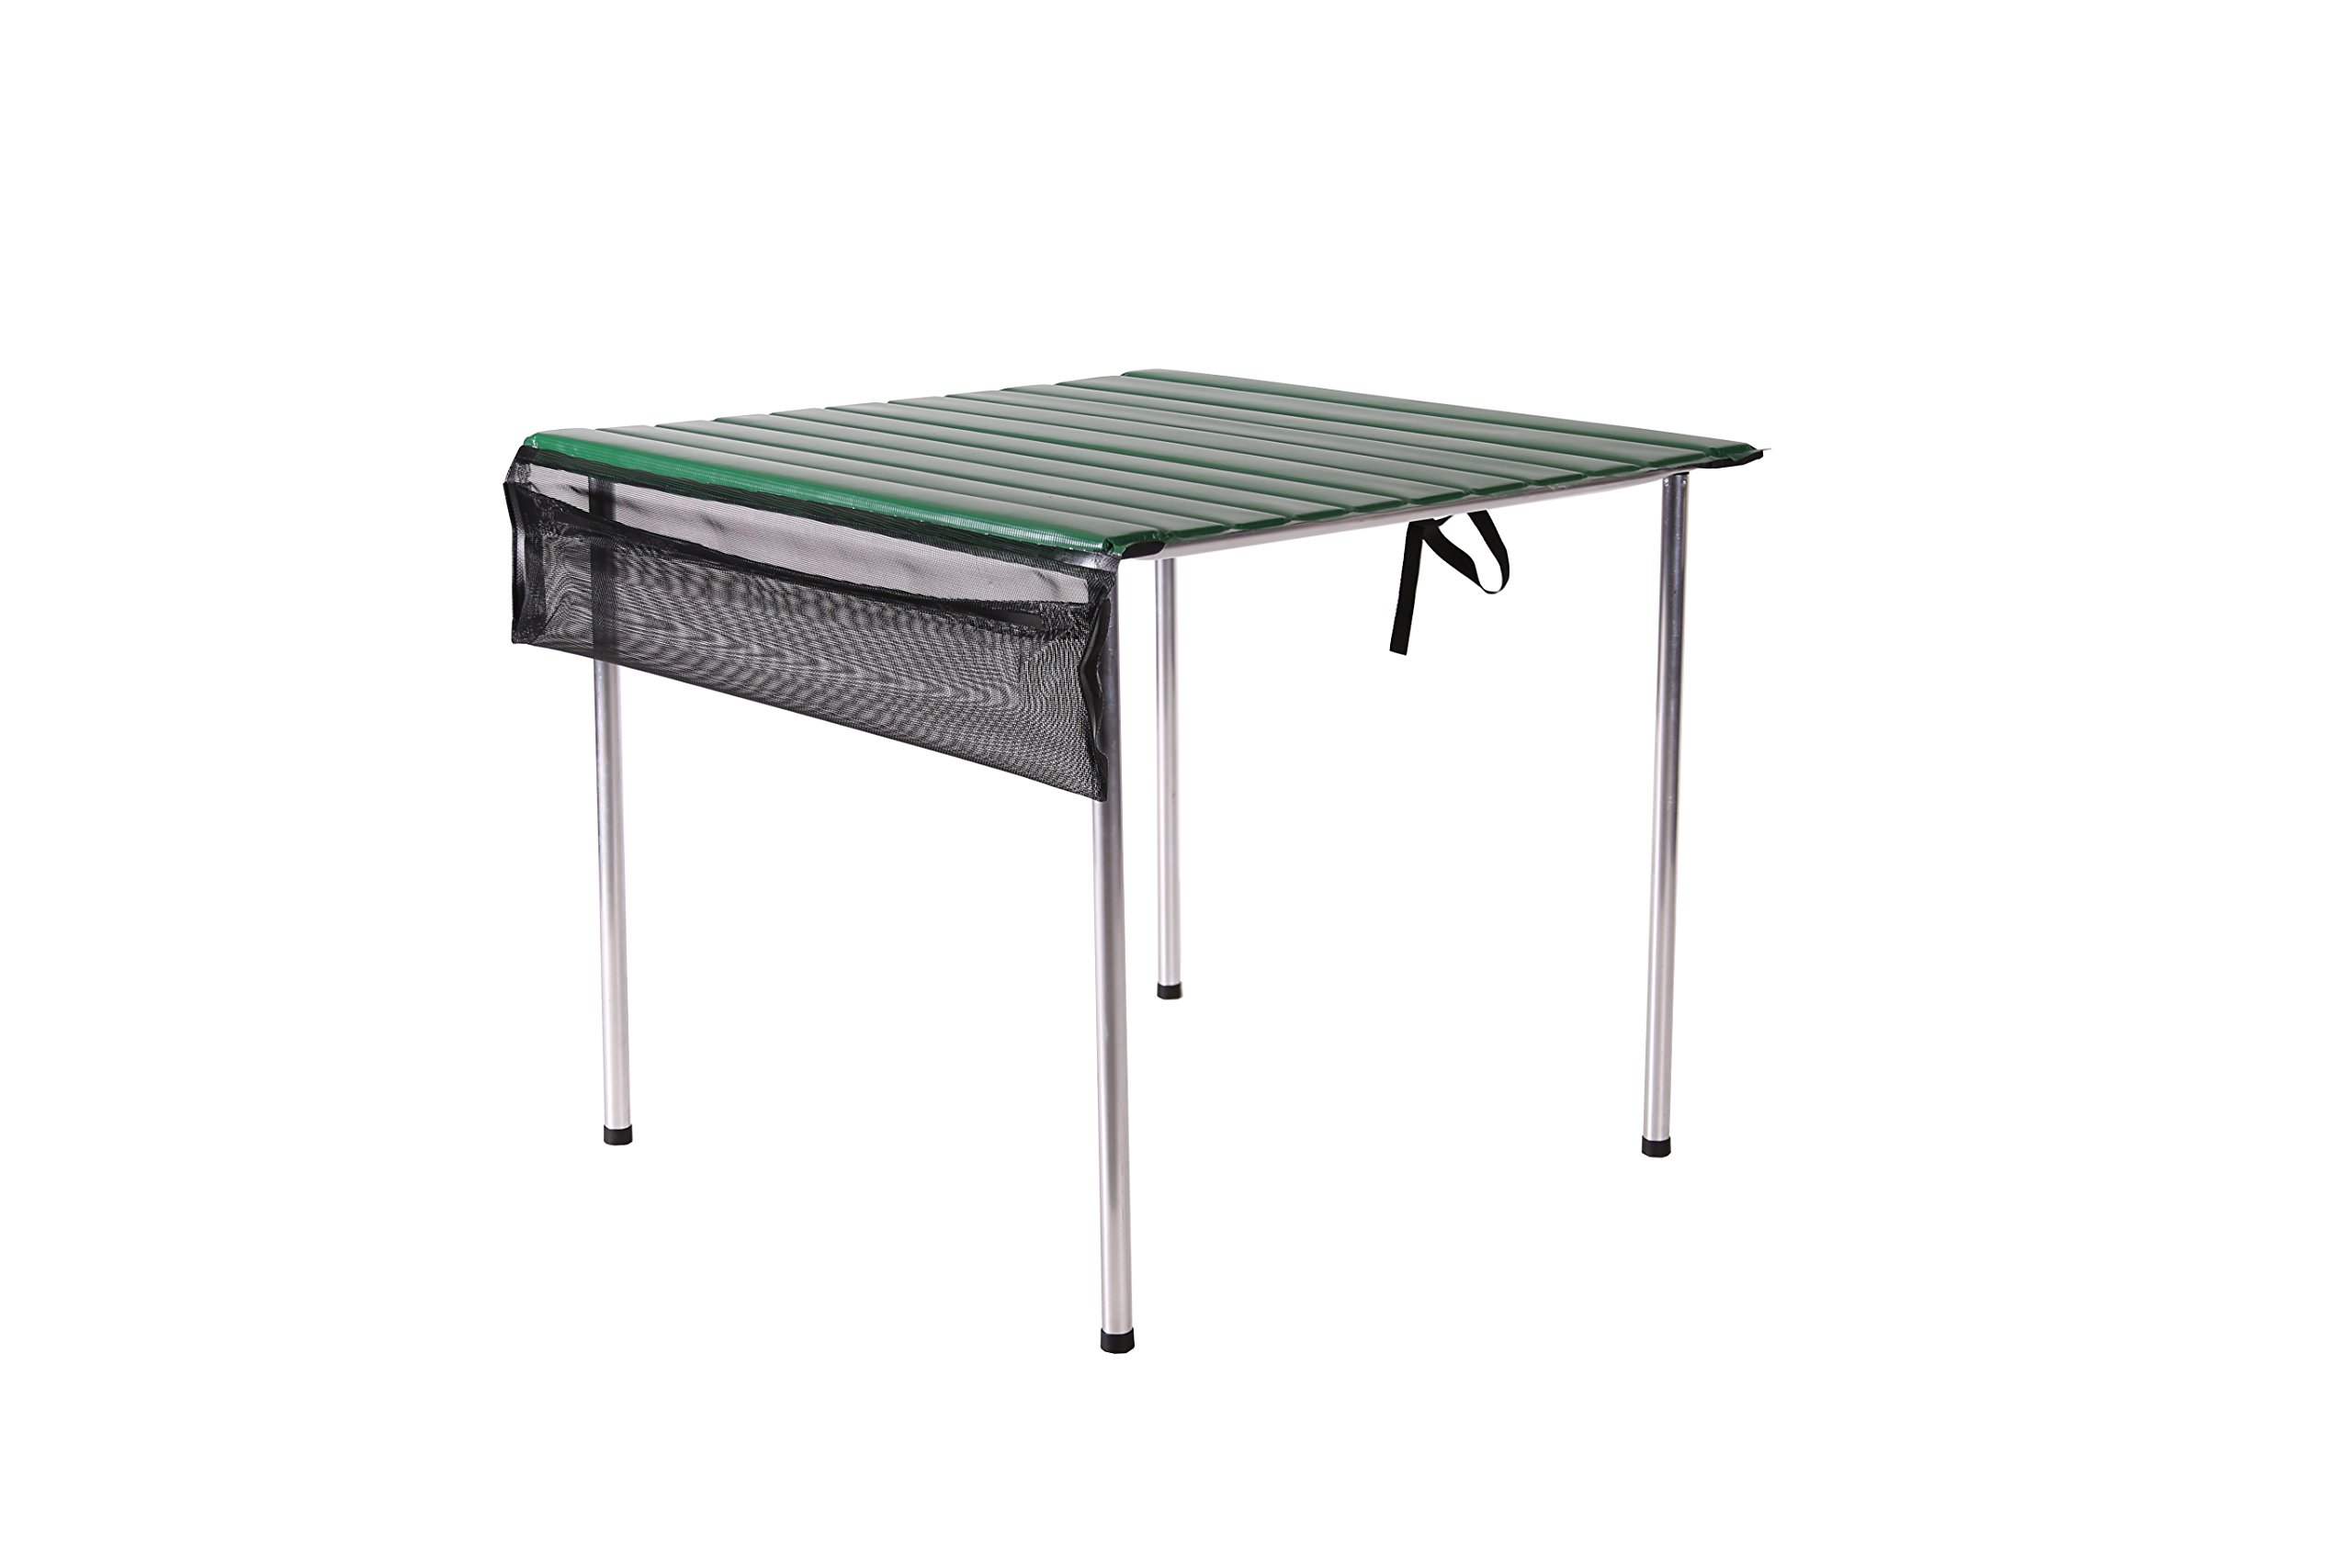 Camp Time, Roll-a-Table, Green, Fold Up Roll Out Table Top, Compact, Portable, USA Made …